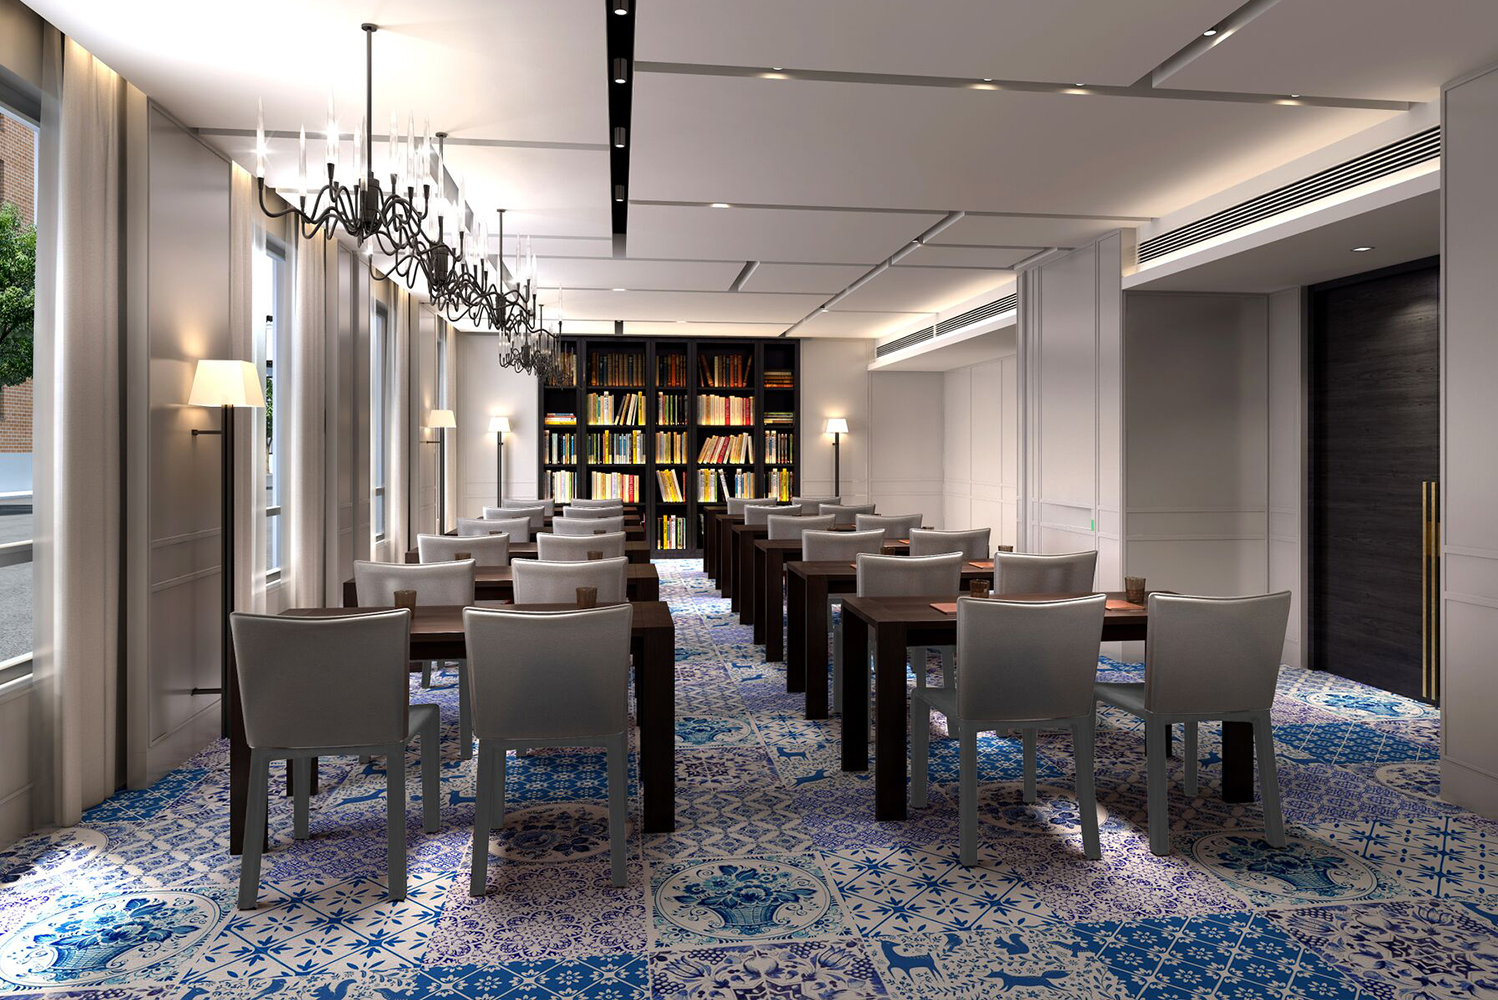 The new Mövenpick Coffee & Wine Lounge concept will be unveiled at this property too, while key hotel features will include a brasserie, gym and three meeting rooms.